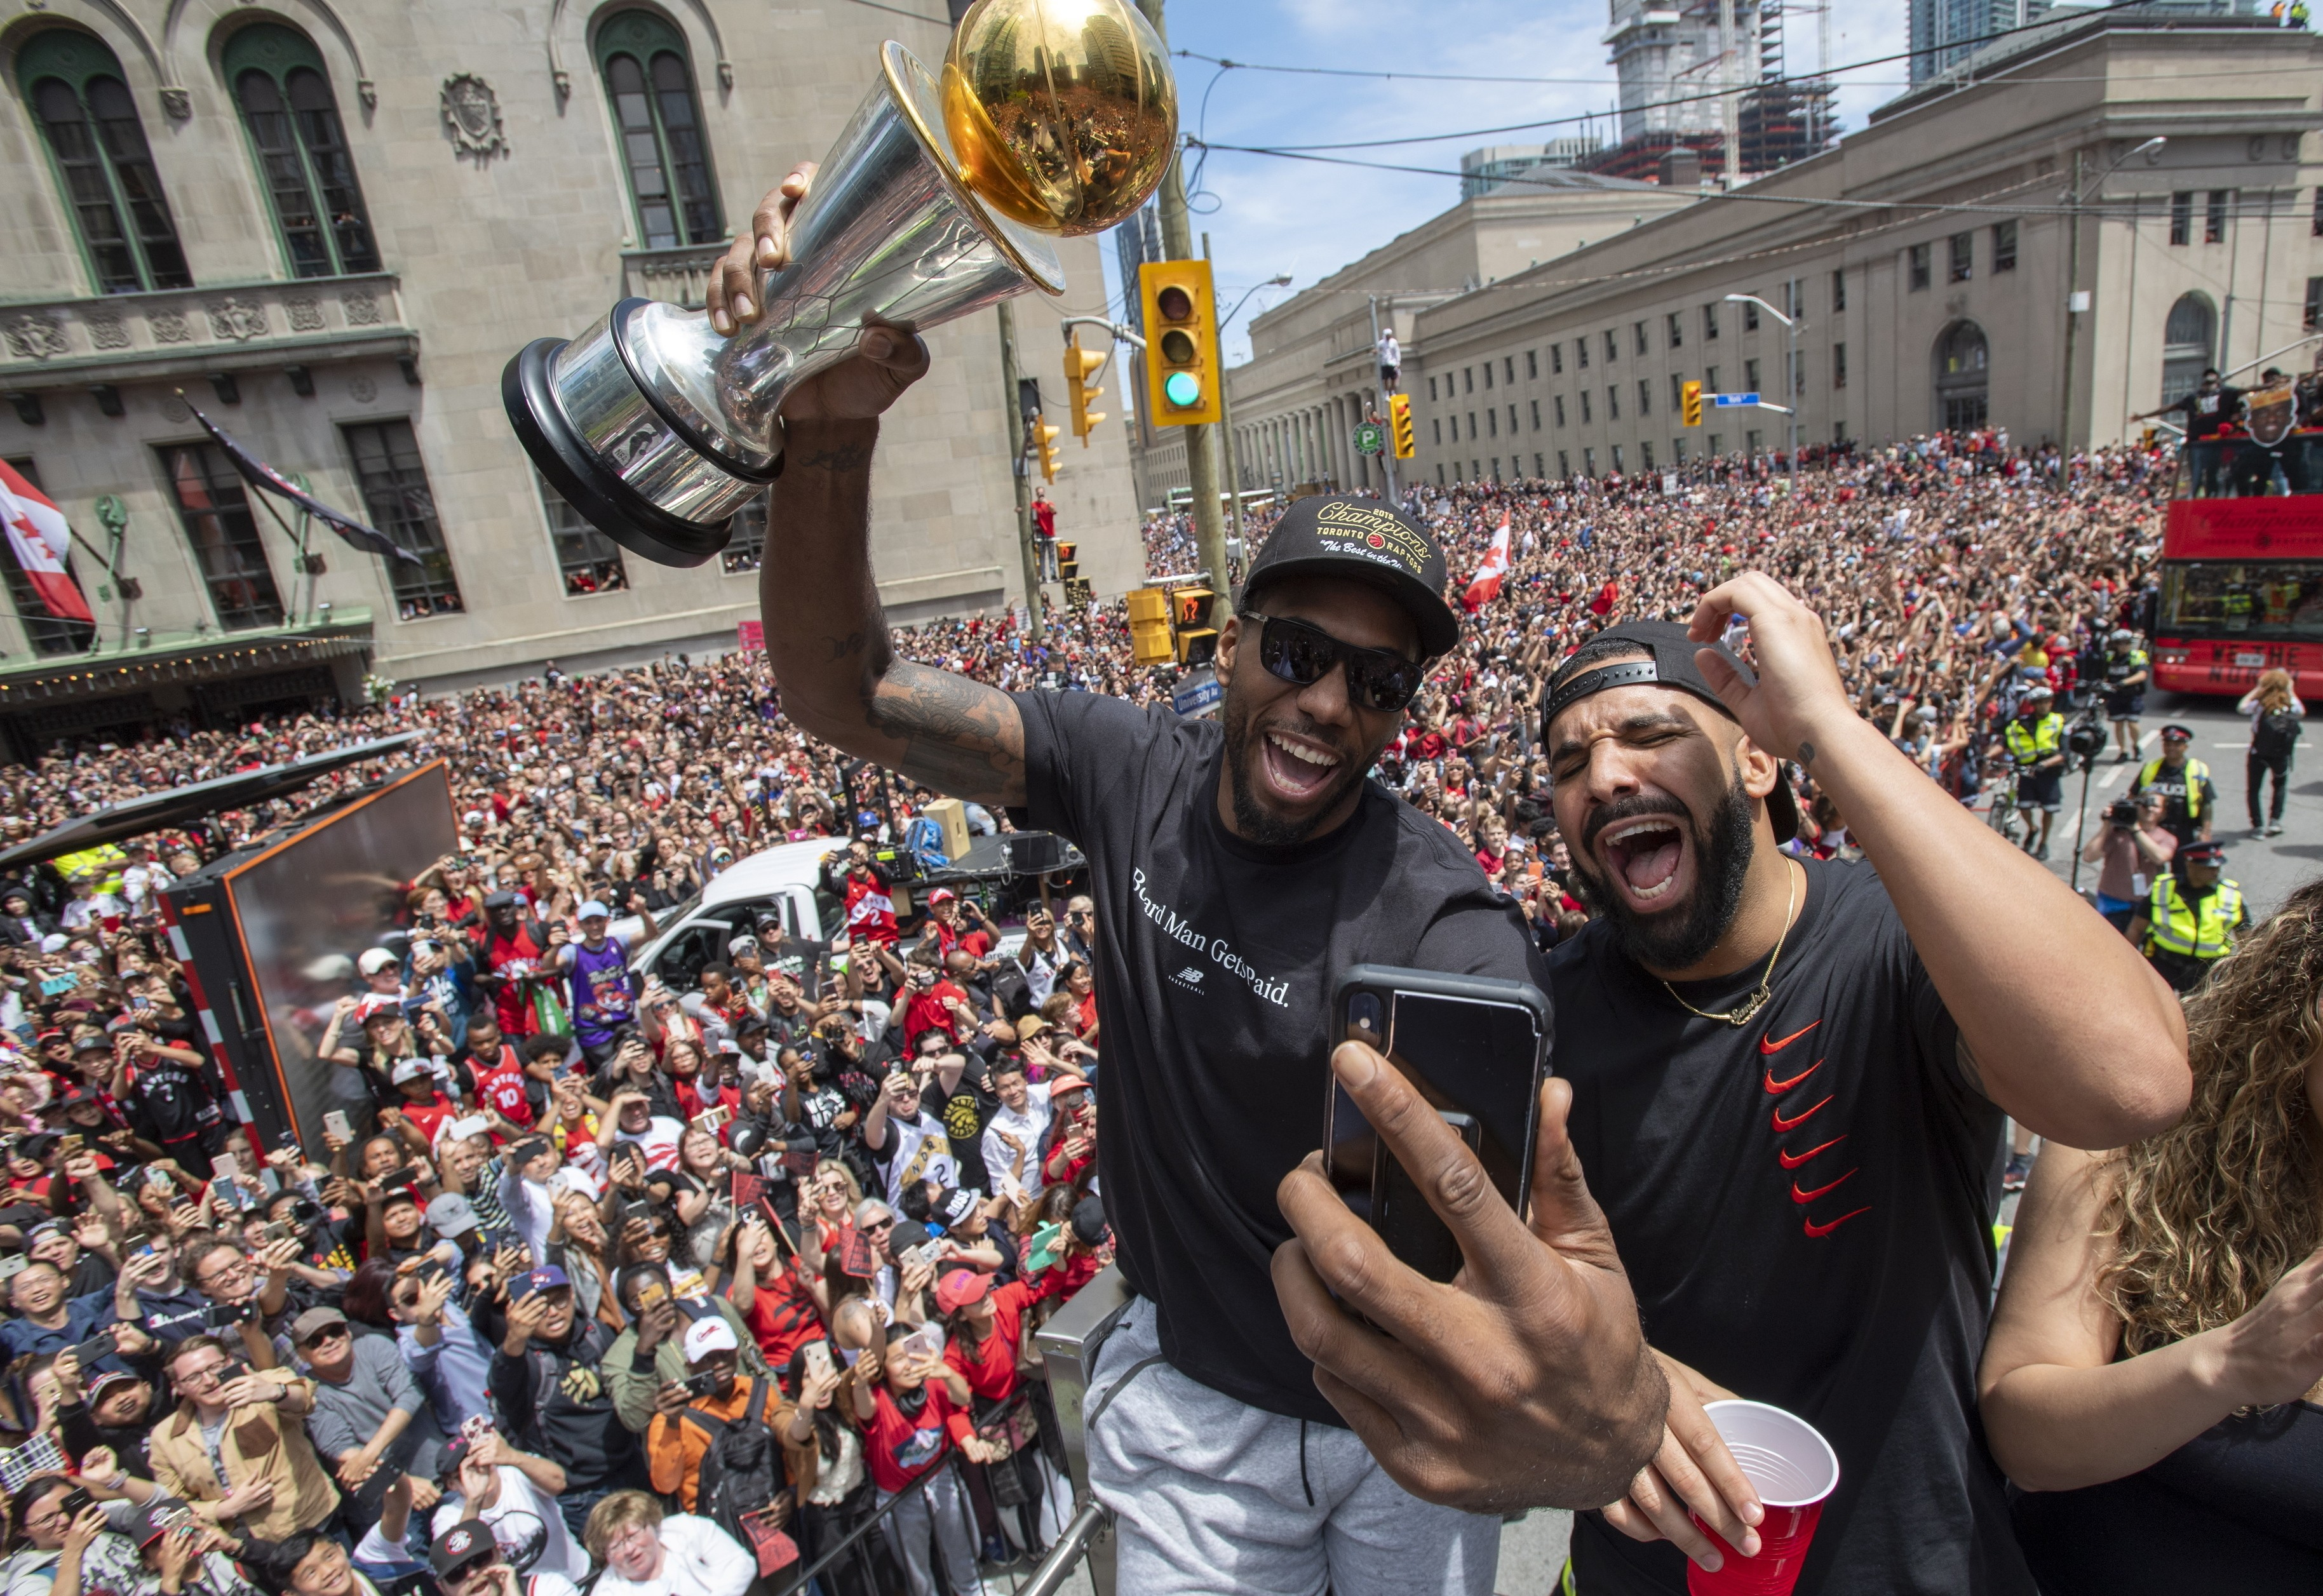 Could the Toronto Raptors snub US president Donald Trump and